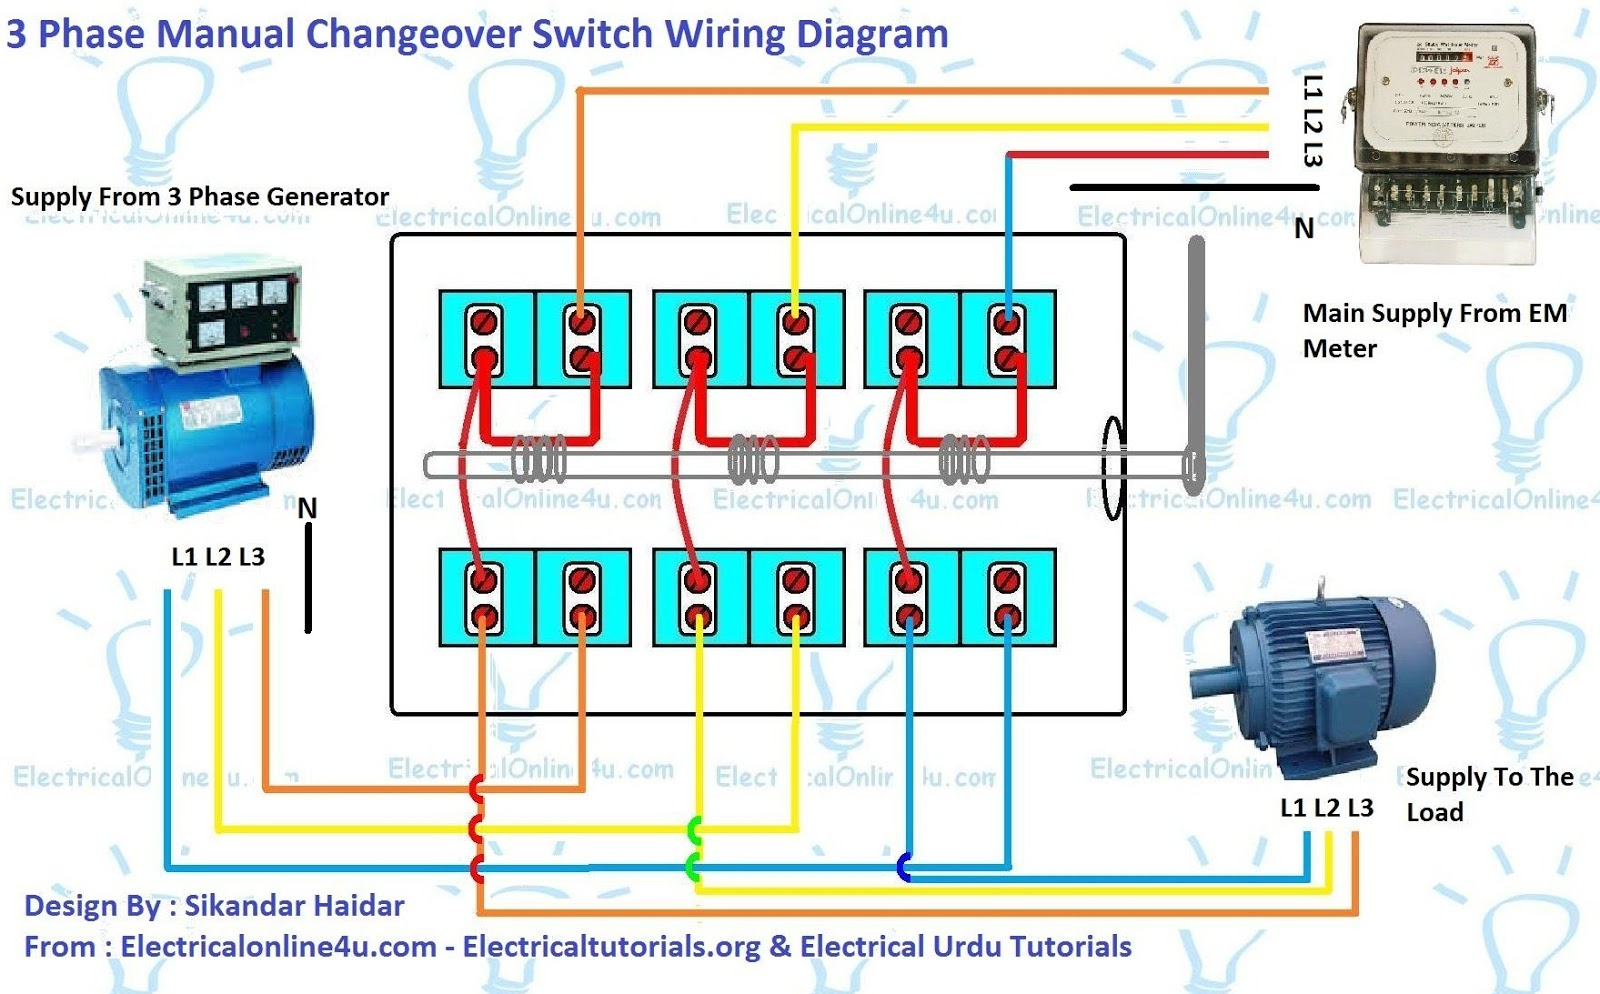 Outstanding 3 Phase Manual Changeover Switch Wiring Diagram For Generator Wiring 101 Capemaxxcnl